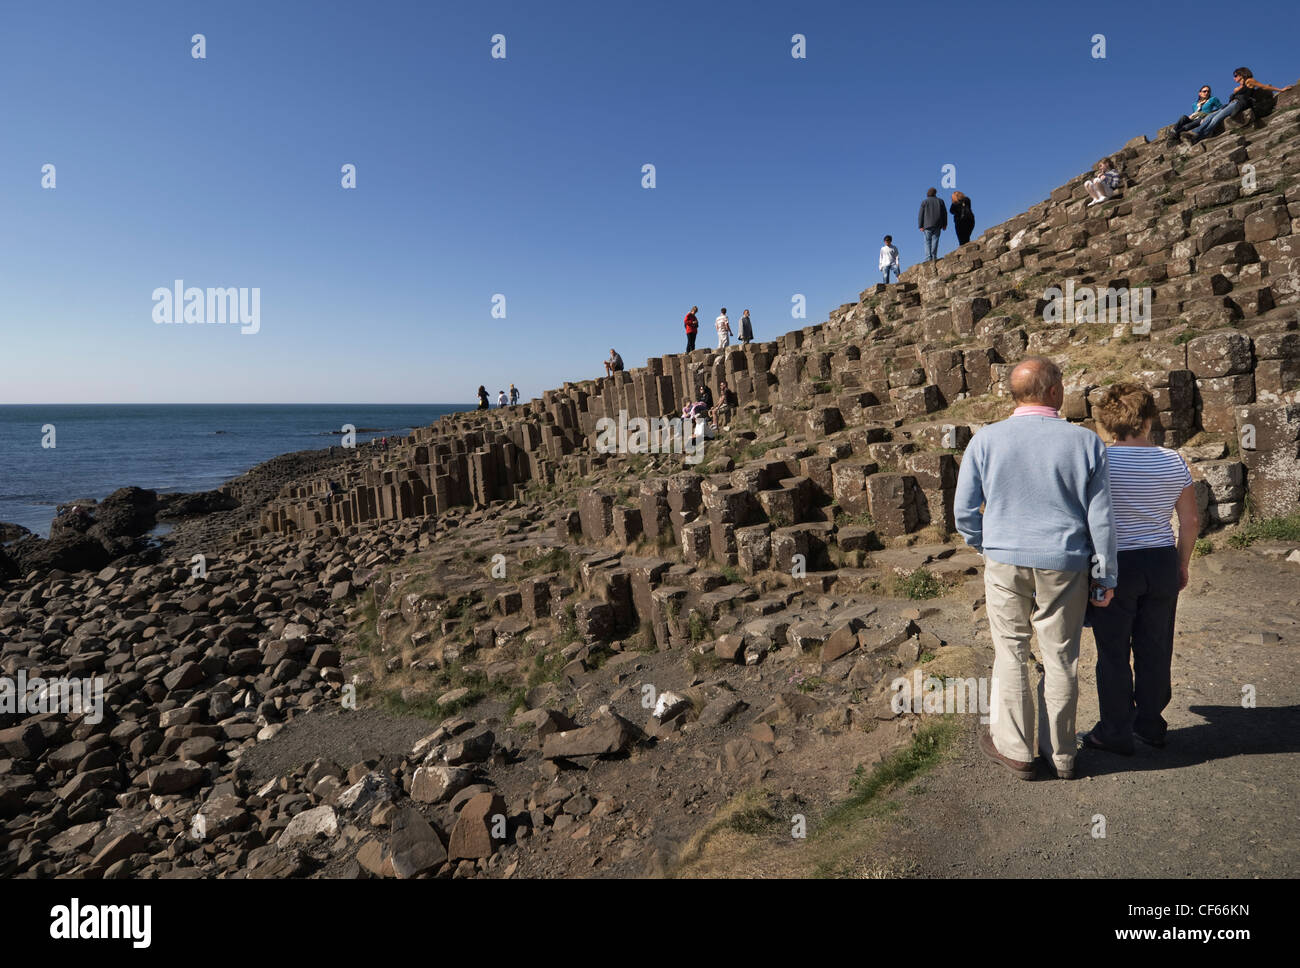 Tourists enjoying the wonder of the Giants Causeway, formed from 40,000 interlocking basalt columns. The Giants - Stock Image